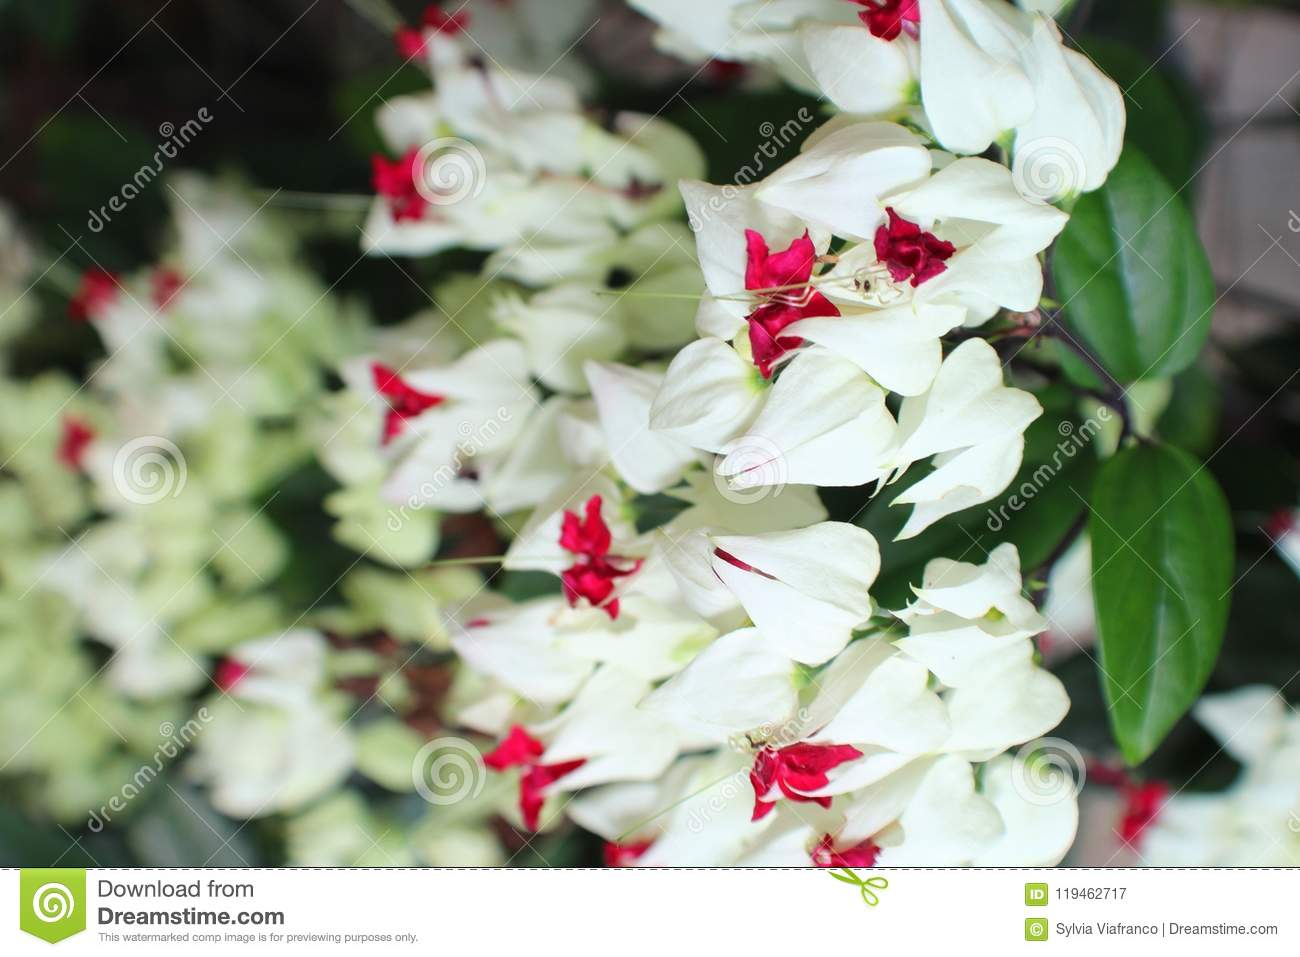 Flowers stock image image of white flowers type tips 119462717 a vine type of flowers with white n red tips mightylinksfo